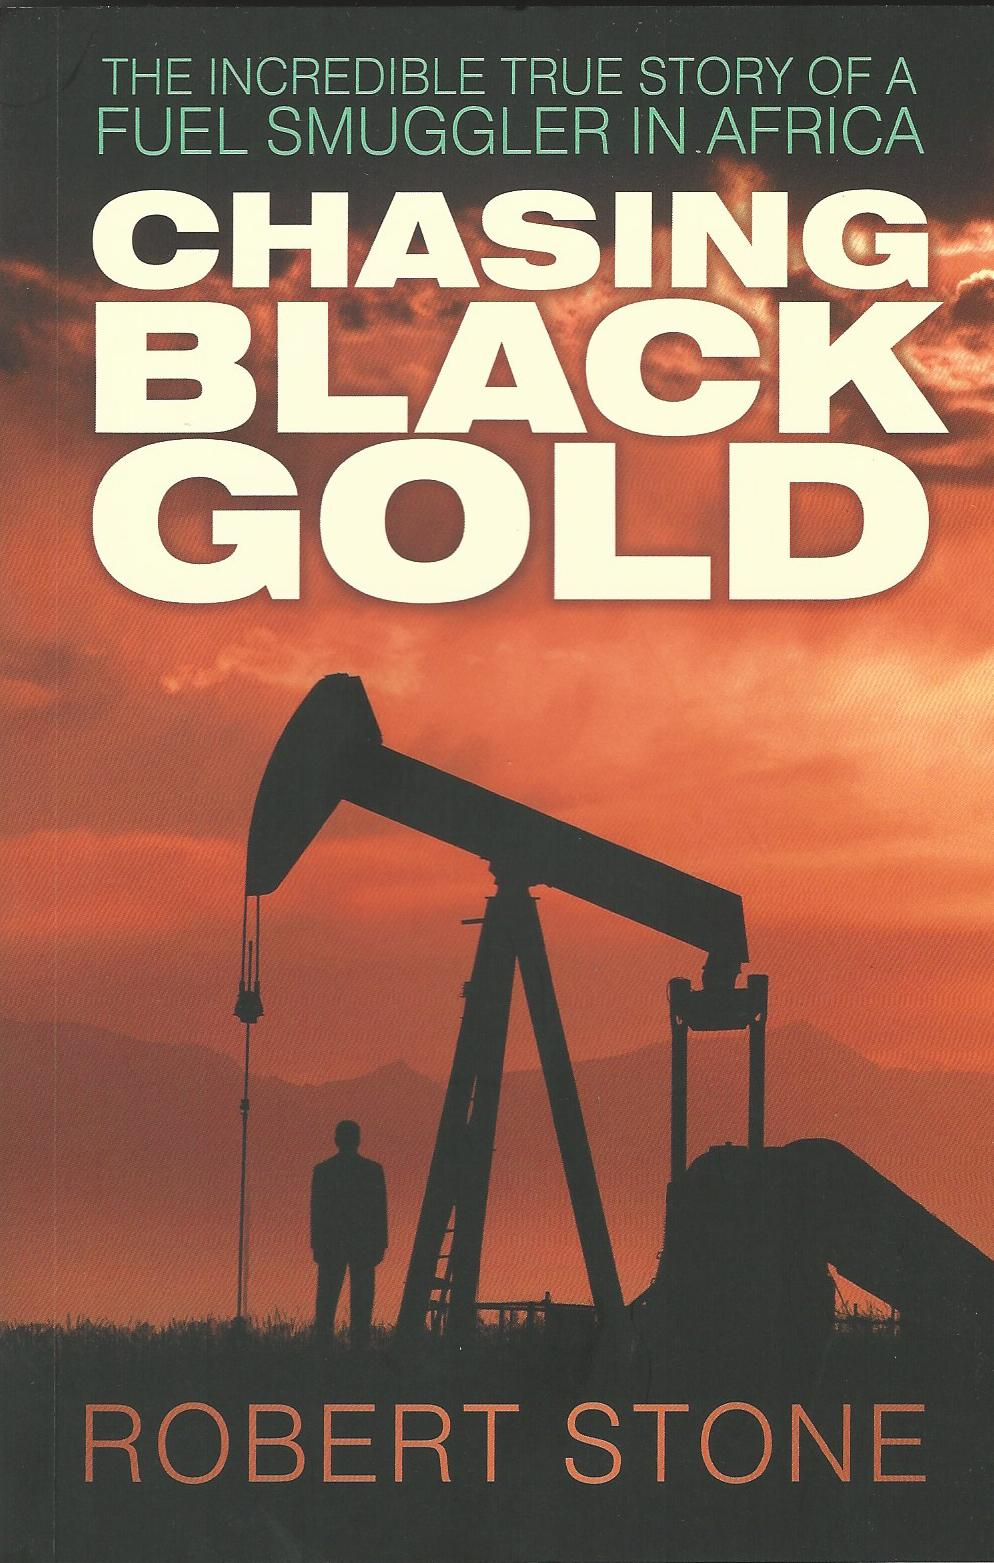 Image for Chasing Black Gold: The Incredible True Story of a Fuel Smuggler in Africa